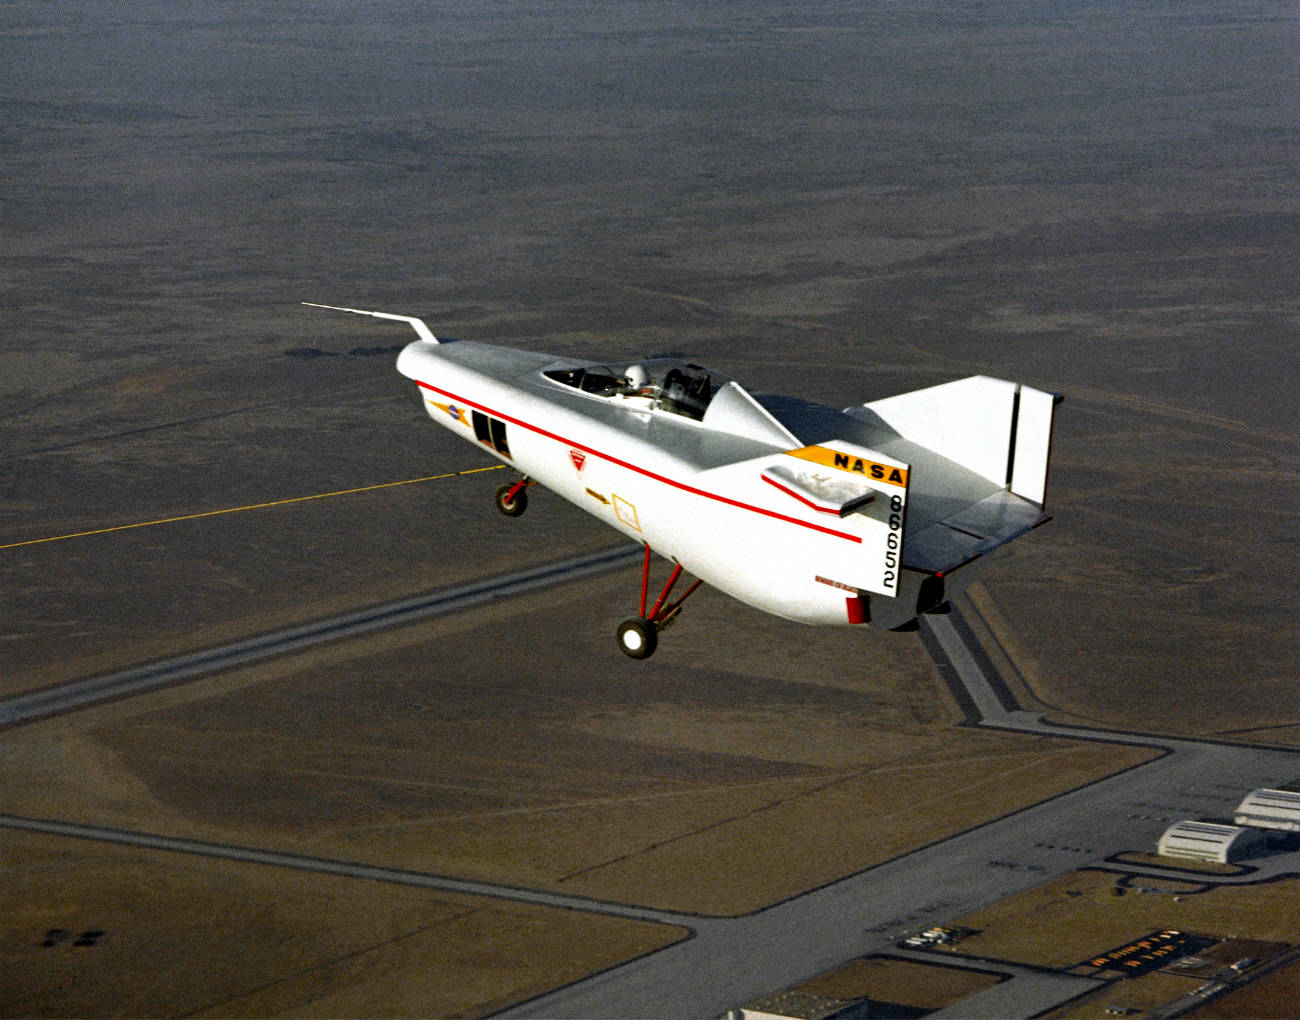 M2-F1 Lifting Body under tow